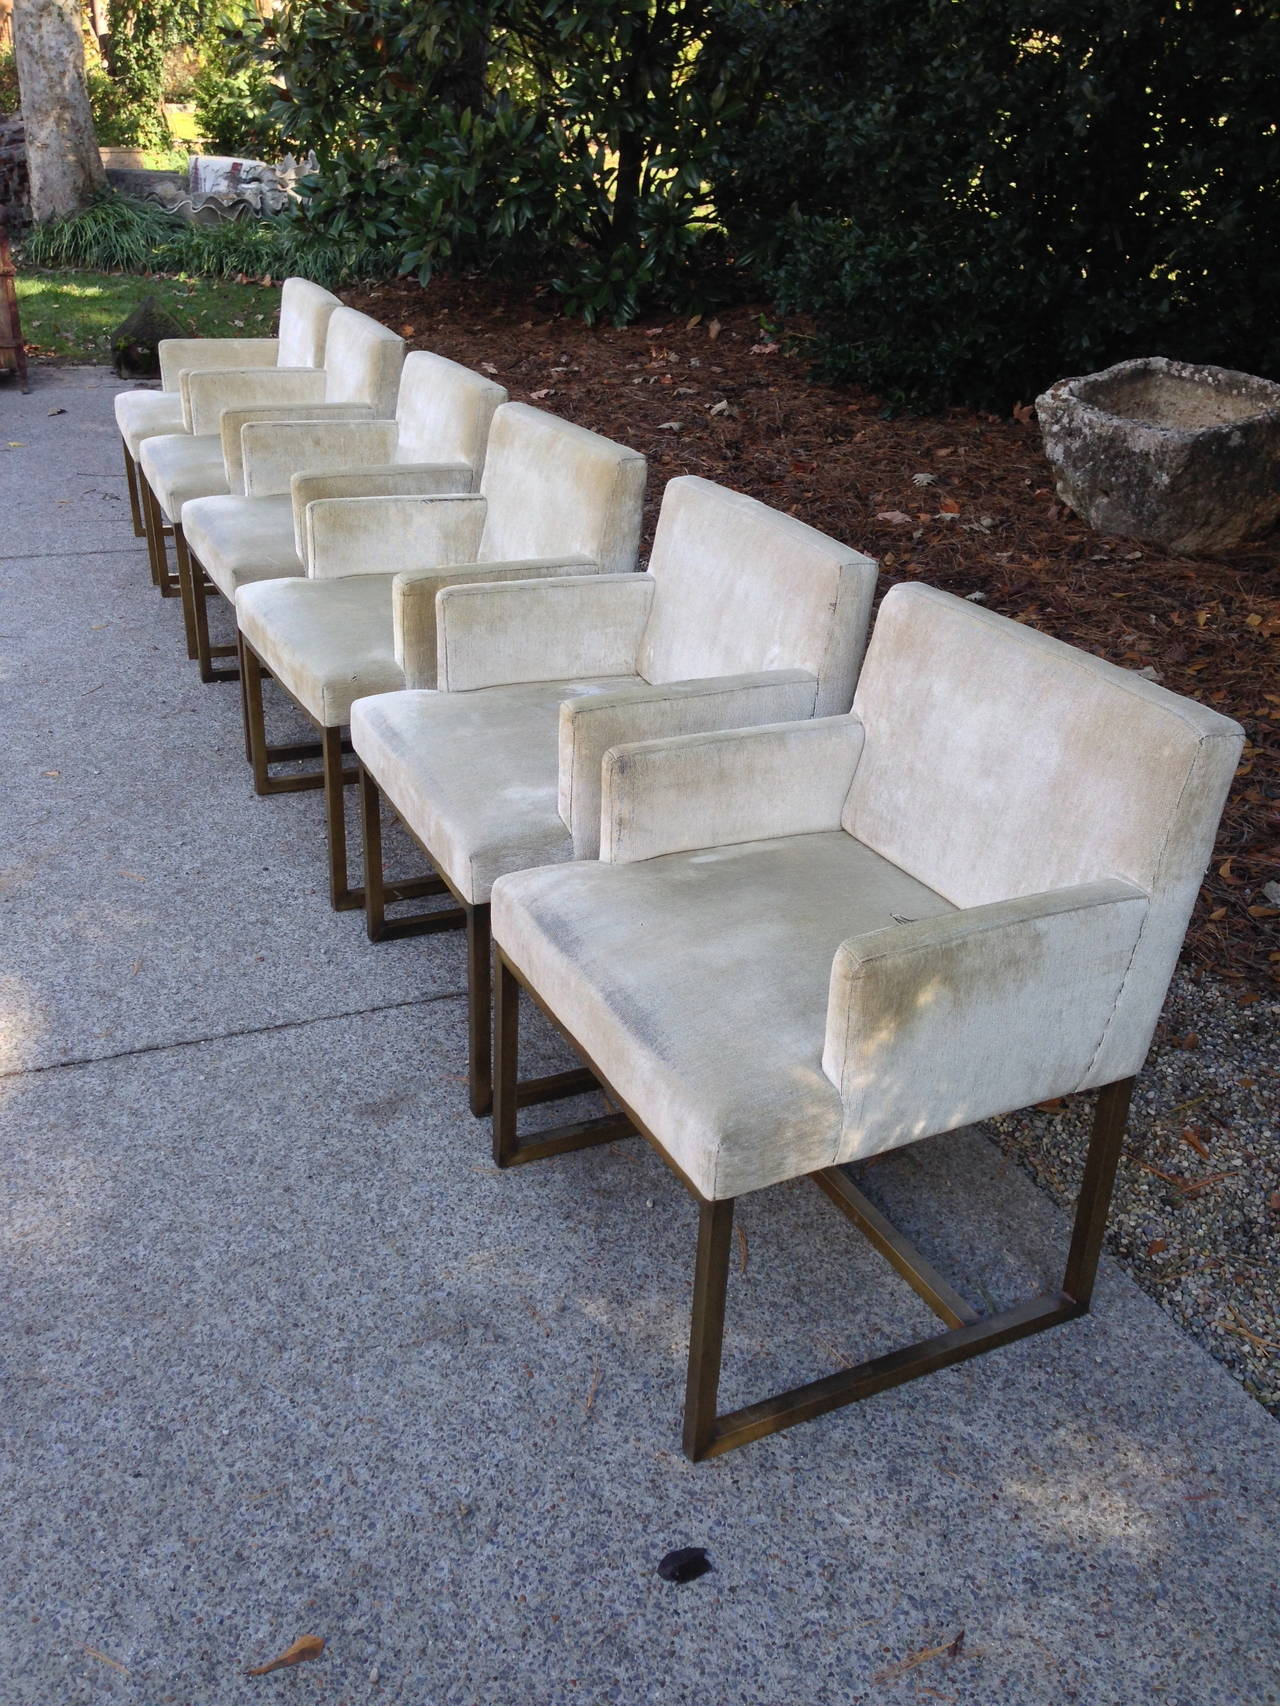 Fabulous set of mid-century Swedish chairs with solid brass bases and original velvet. Heavy and comfortable. 2 are sold and four remain. Sold as pairs but priced per chair